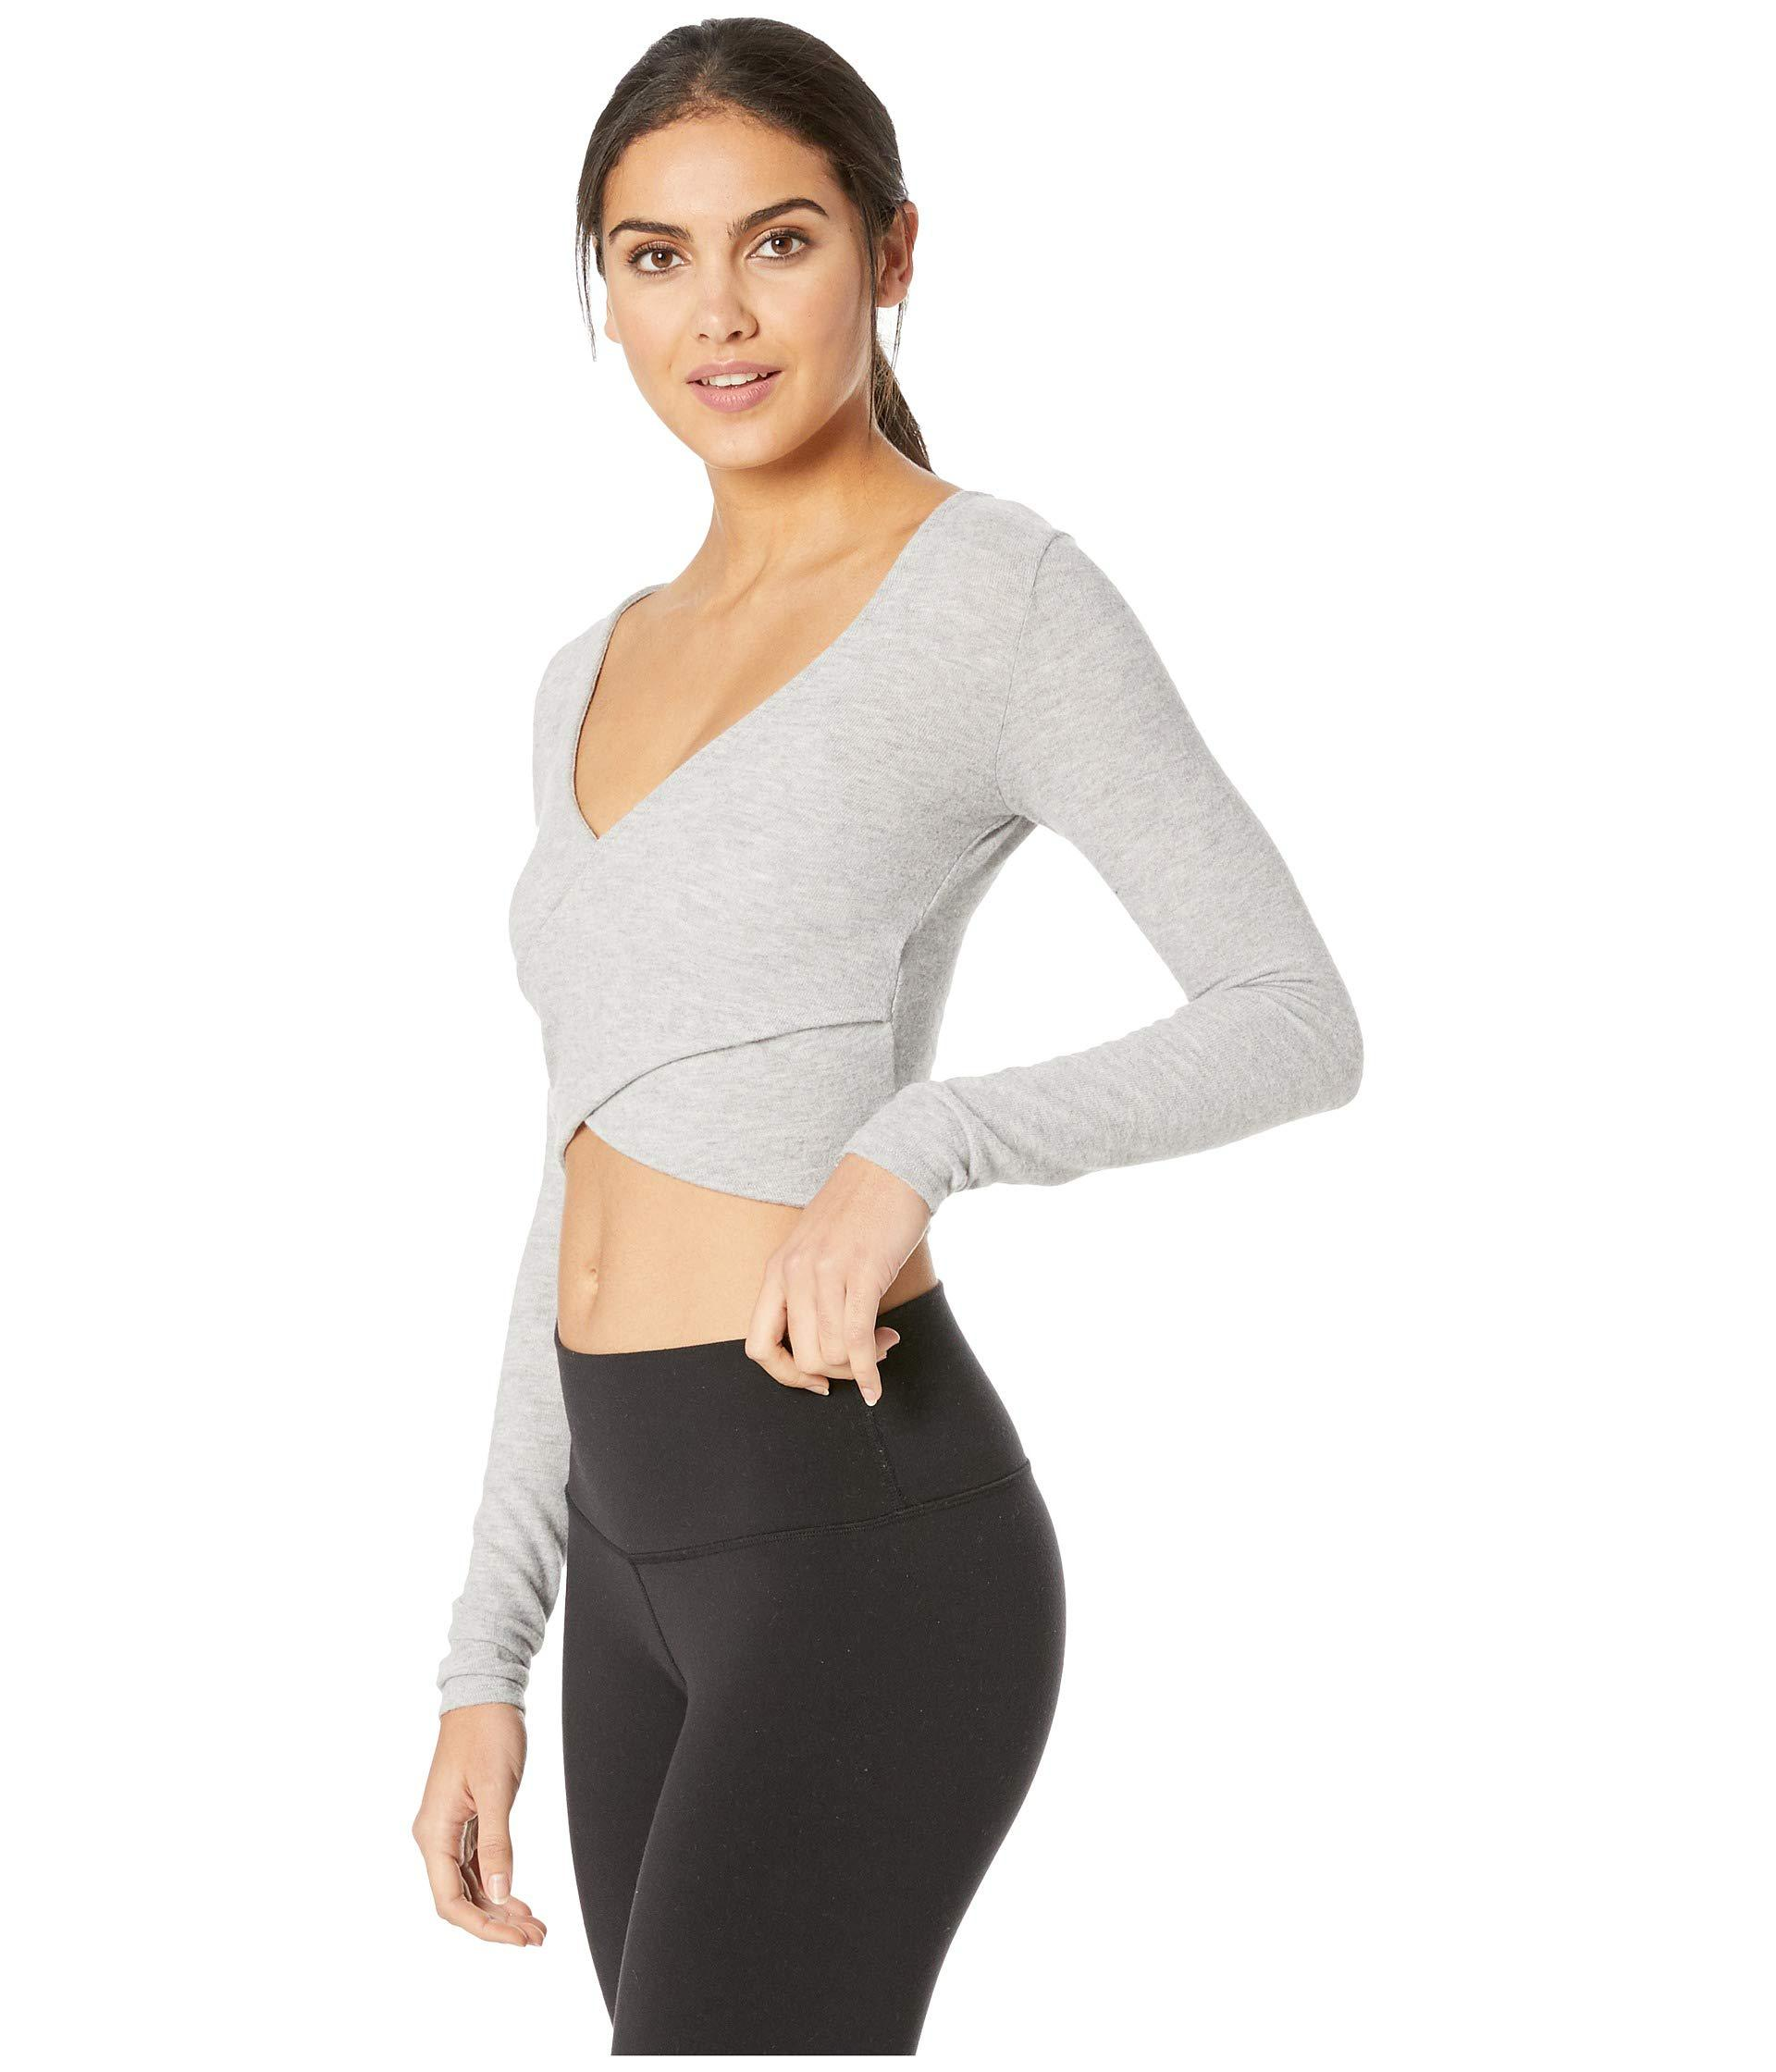 307d91abb80b1 Lyst - Alo Yoga Amelia Luxe Long Sleeve Crop (dove Grey Heather) Women s  Clothing in Gray